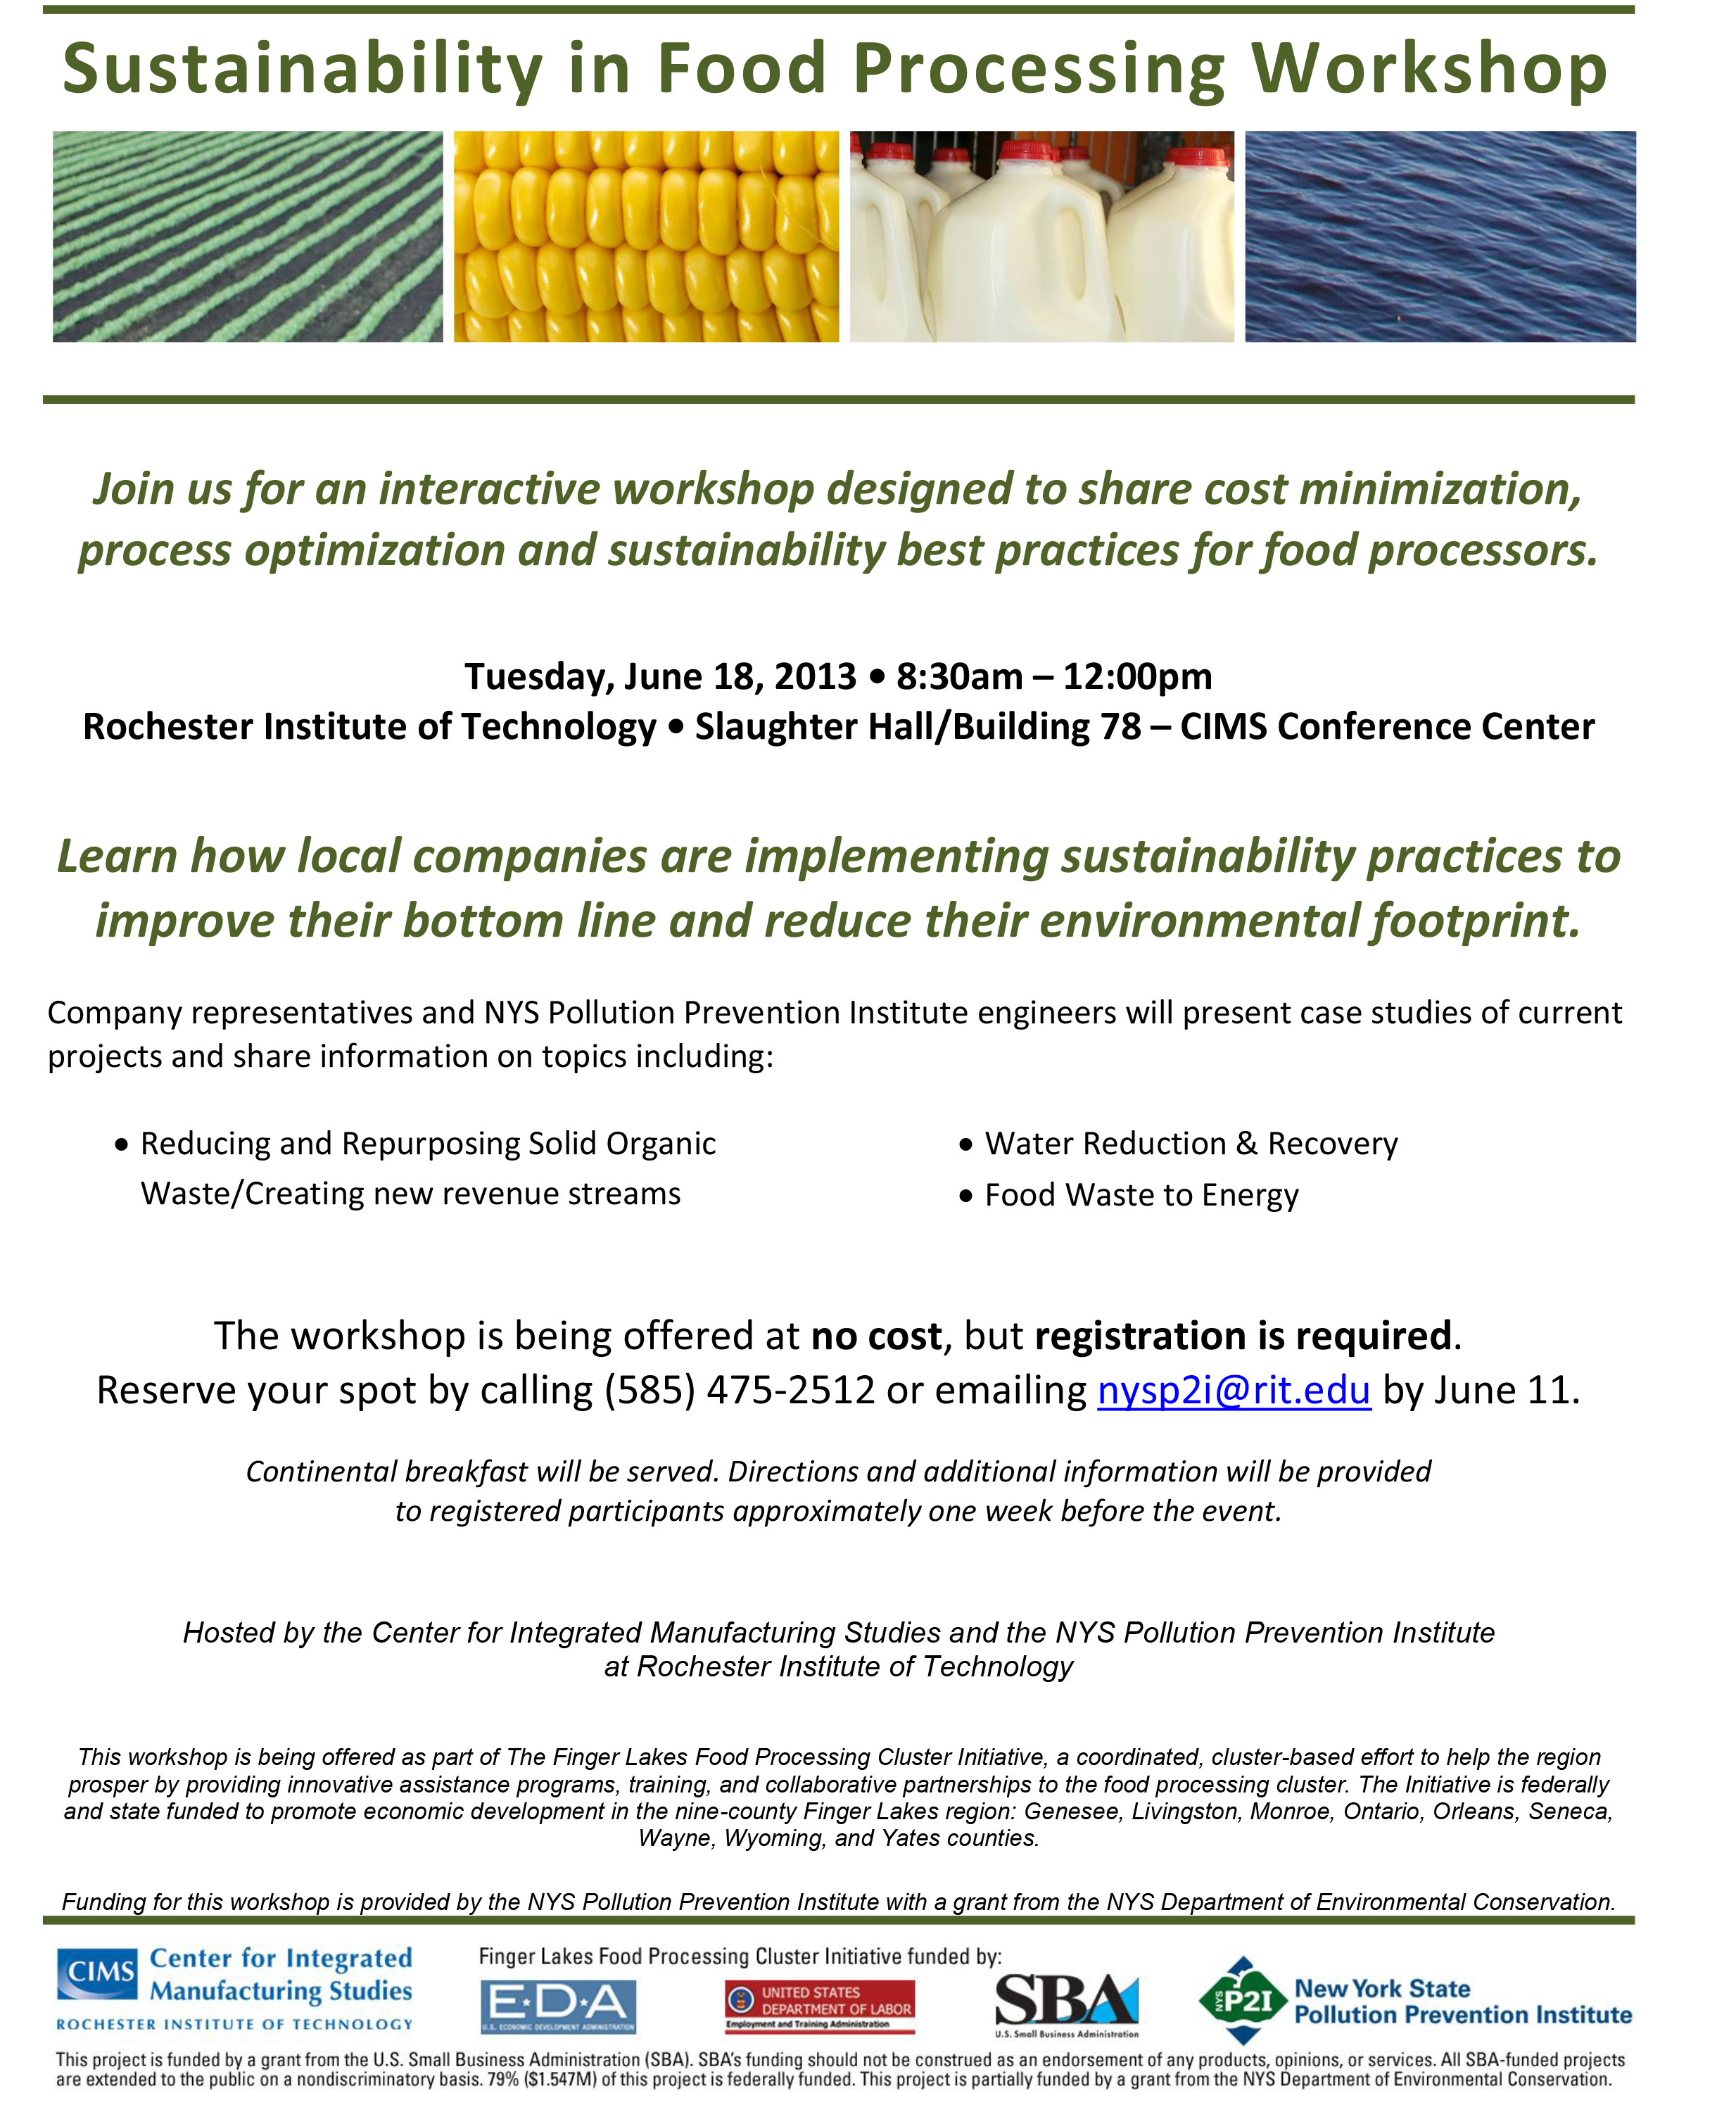 sustainability_in_food_processing_workshop_flyer_0